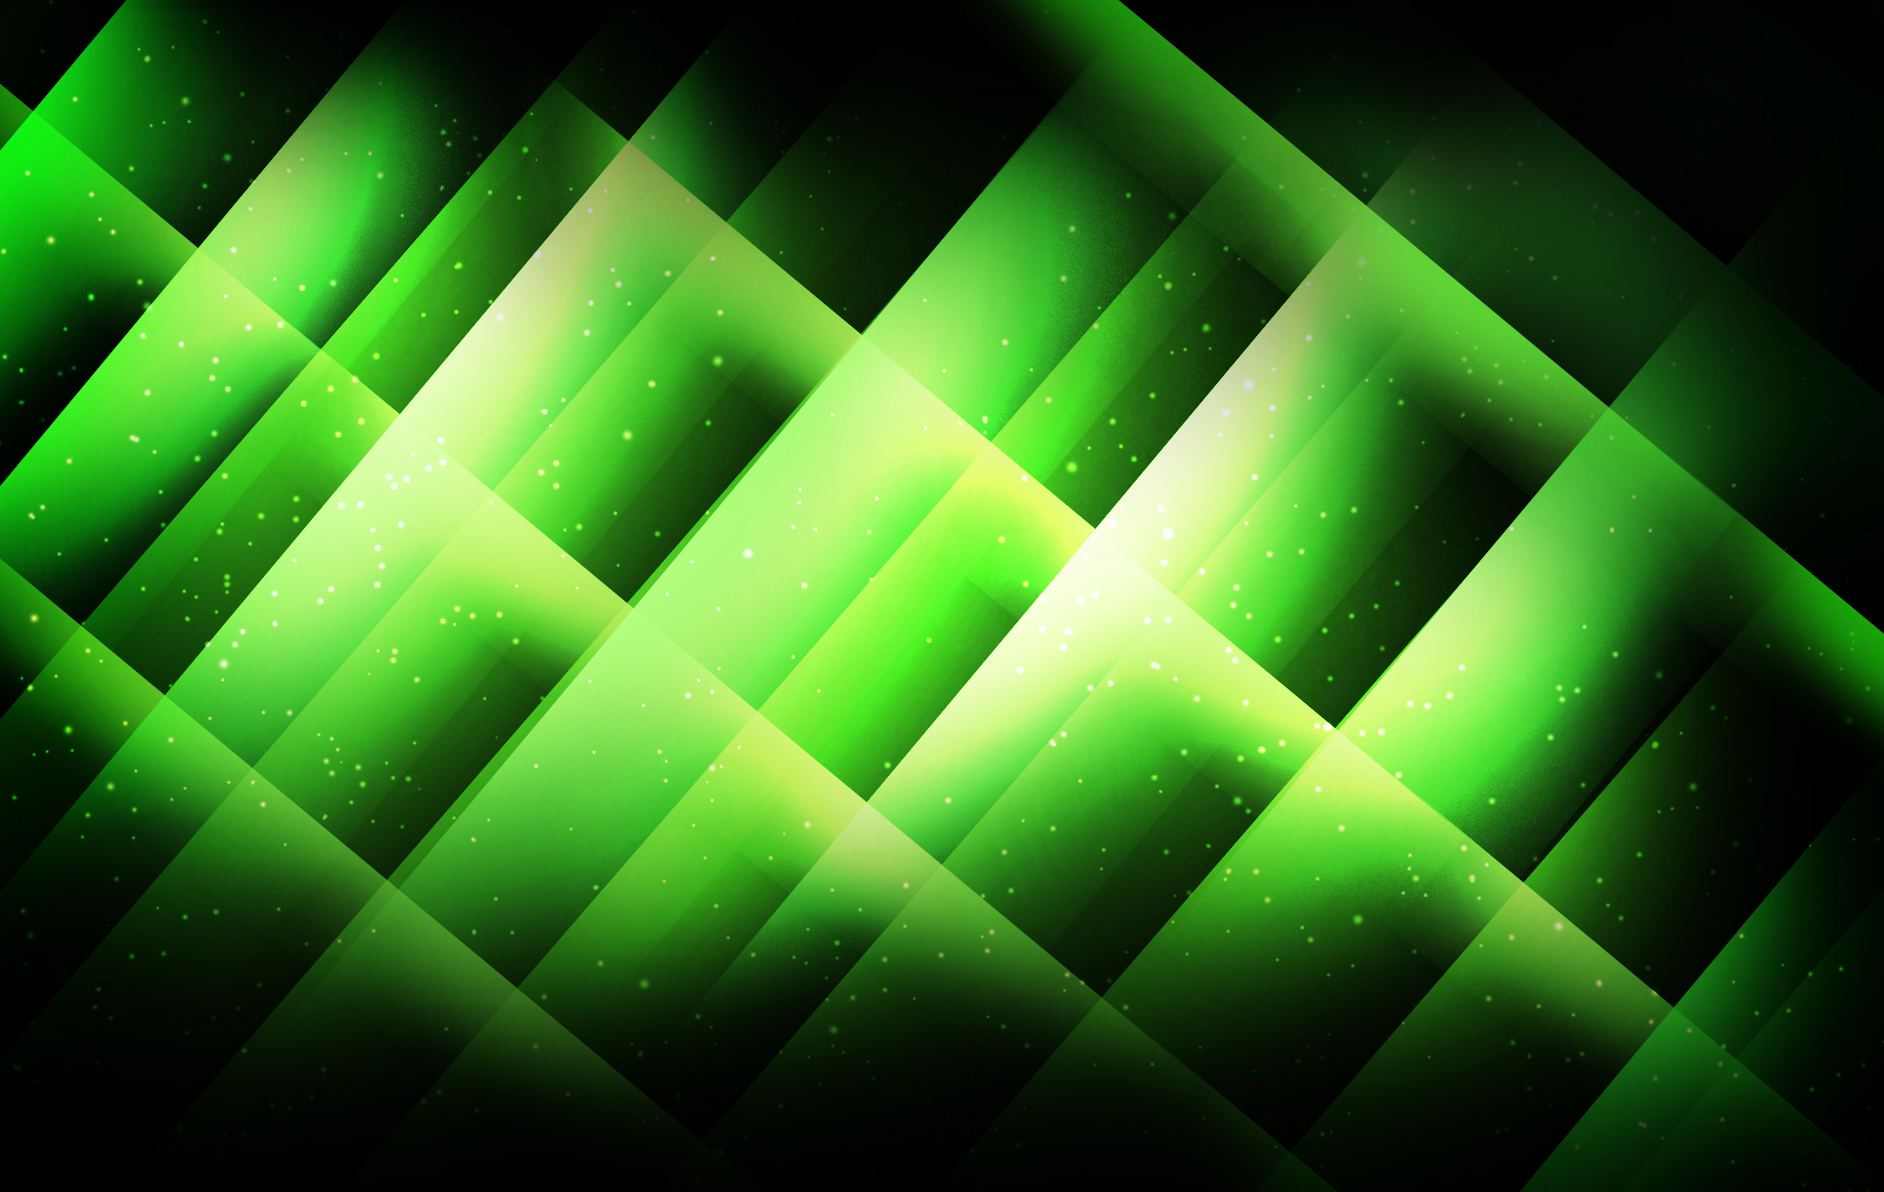 Super Cool Abstract Light Background Freebie Design Chair Blog 1884x1192